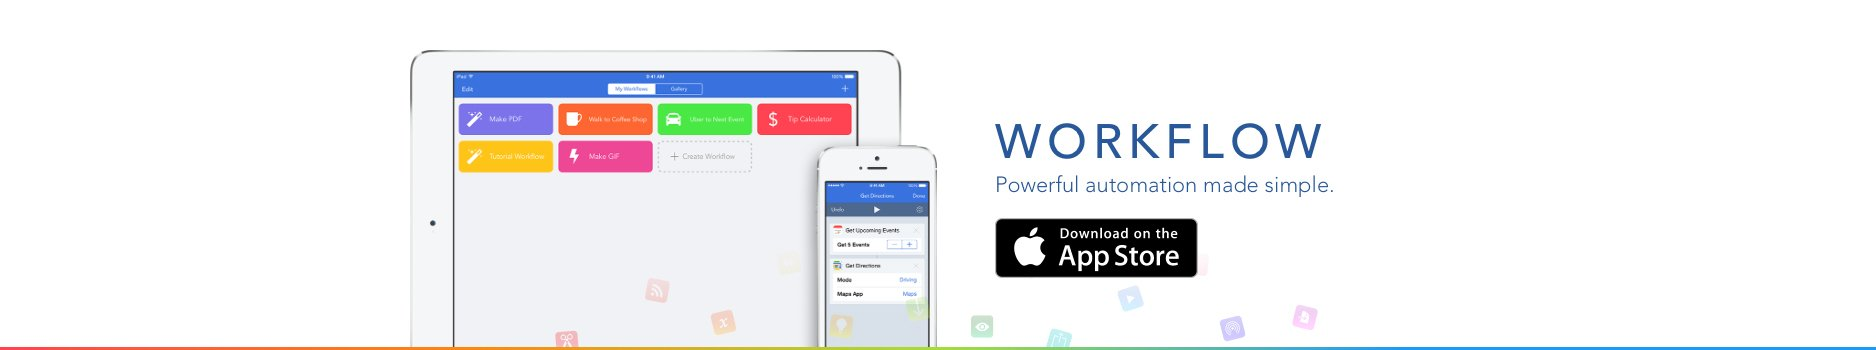 Automation app Workflow receives a big update for iOS 9, WatchOS 2.0